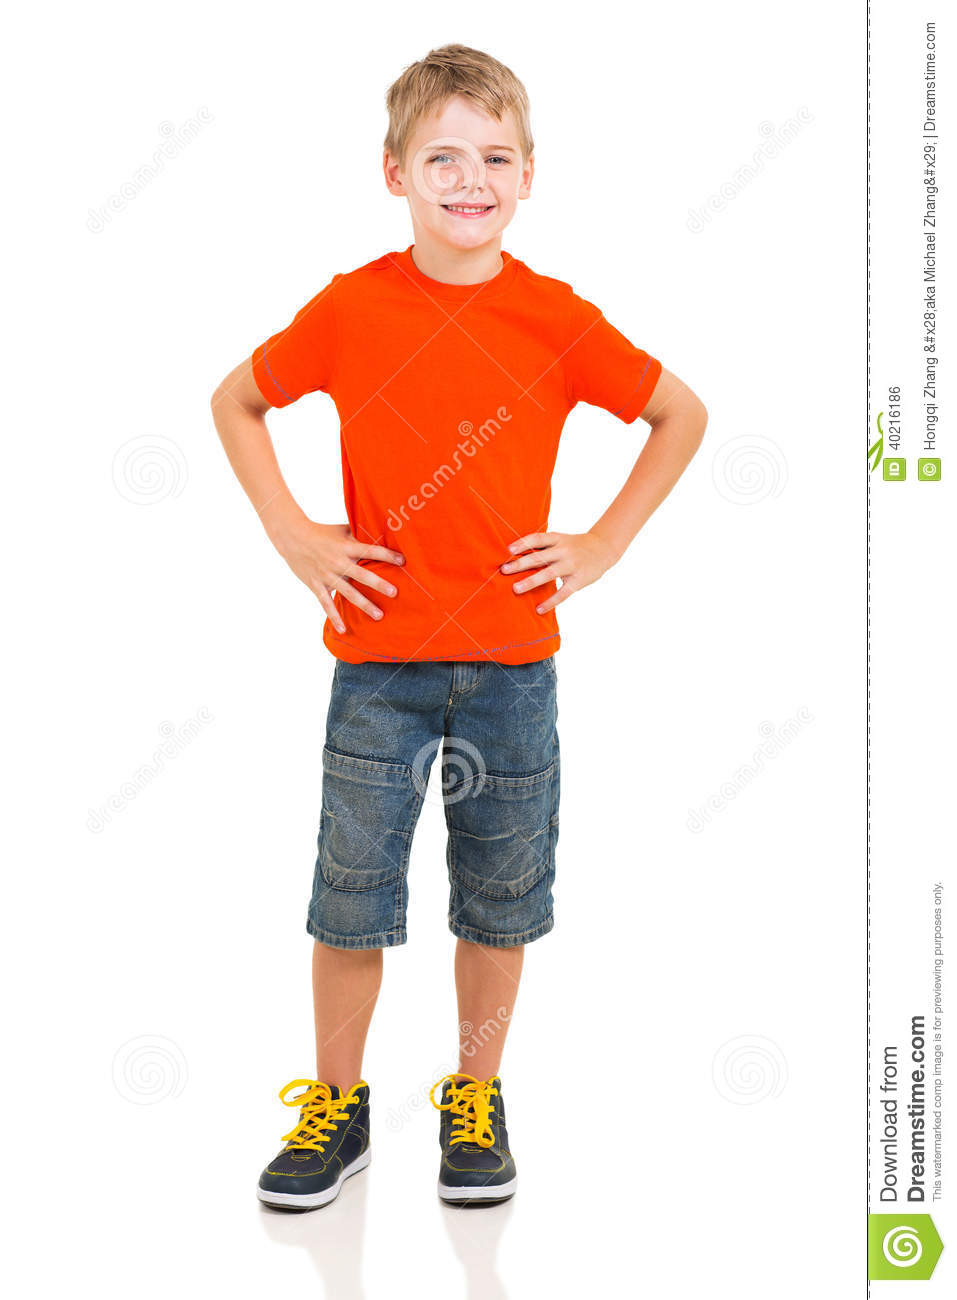 Boy full length portrait stock photo. Image of background ...